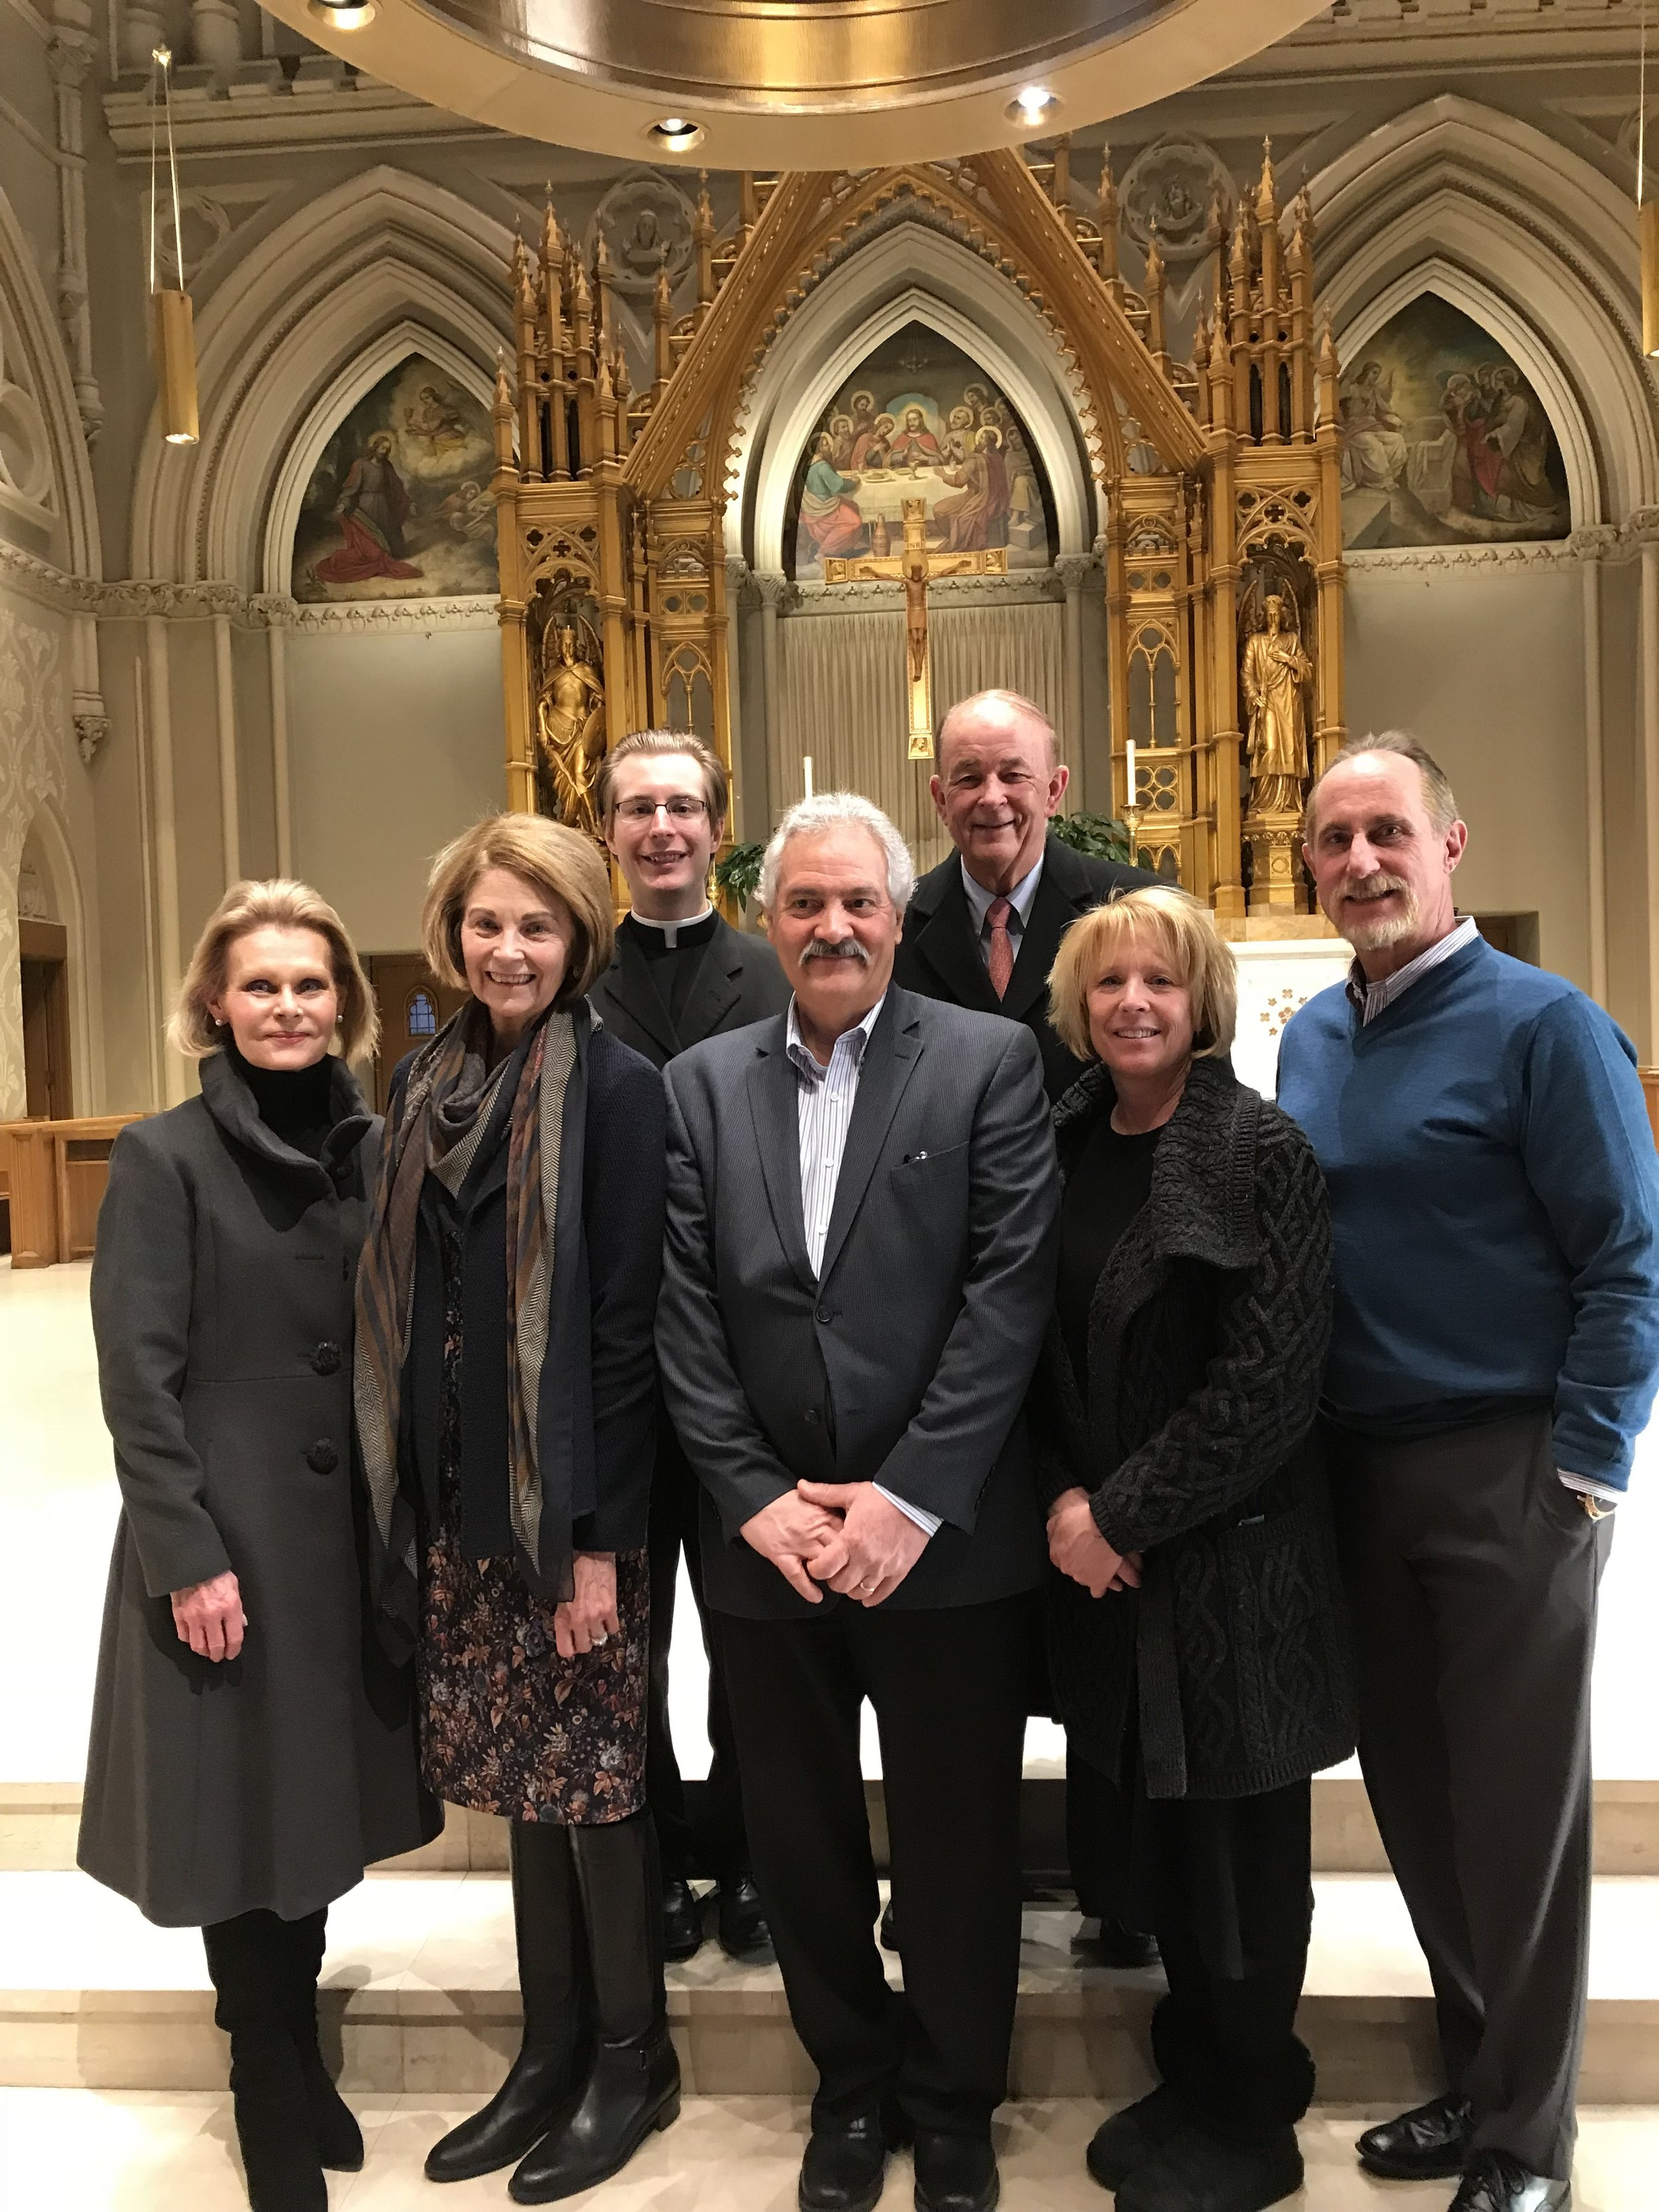 Fr. Barrow, OLM RCIA Team with the new elect, Sue Healey and Al Behbehani at the Rite of Election at the Cathedral of Saints Peter and Paul